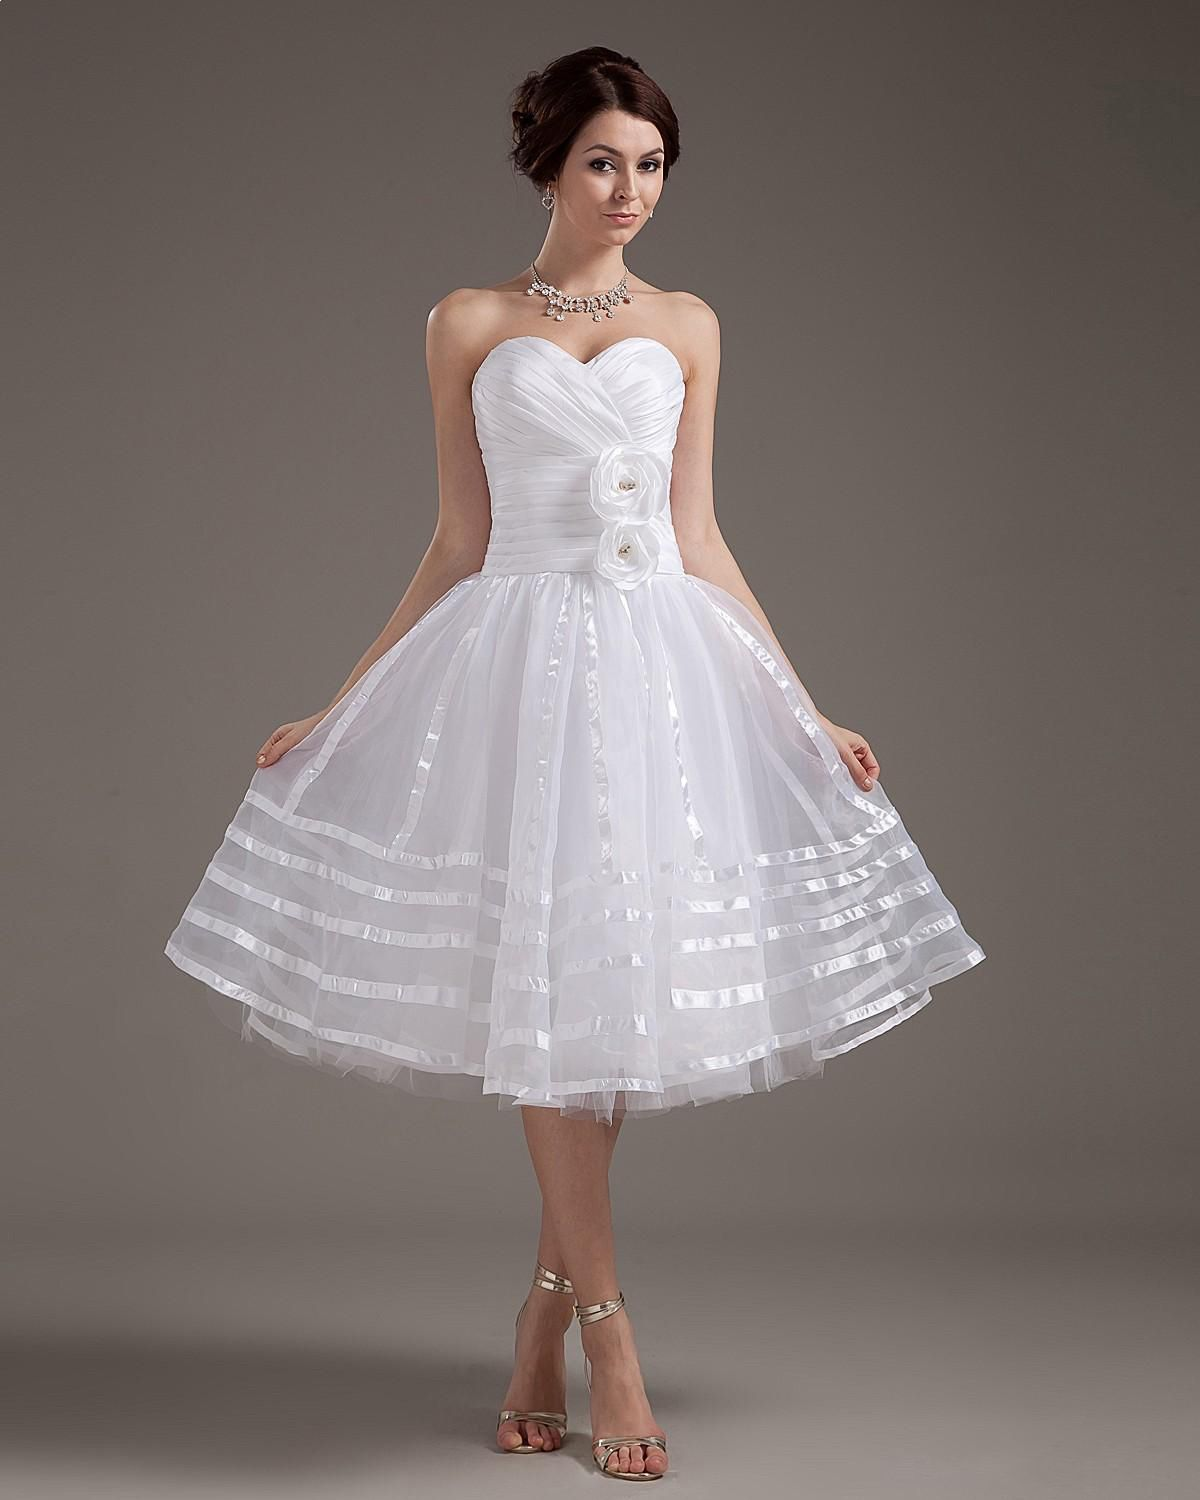 Elegant Strapless Short Wedding Dress Read More Image1nextdressin Indexphprelegant